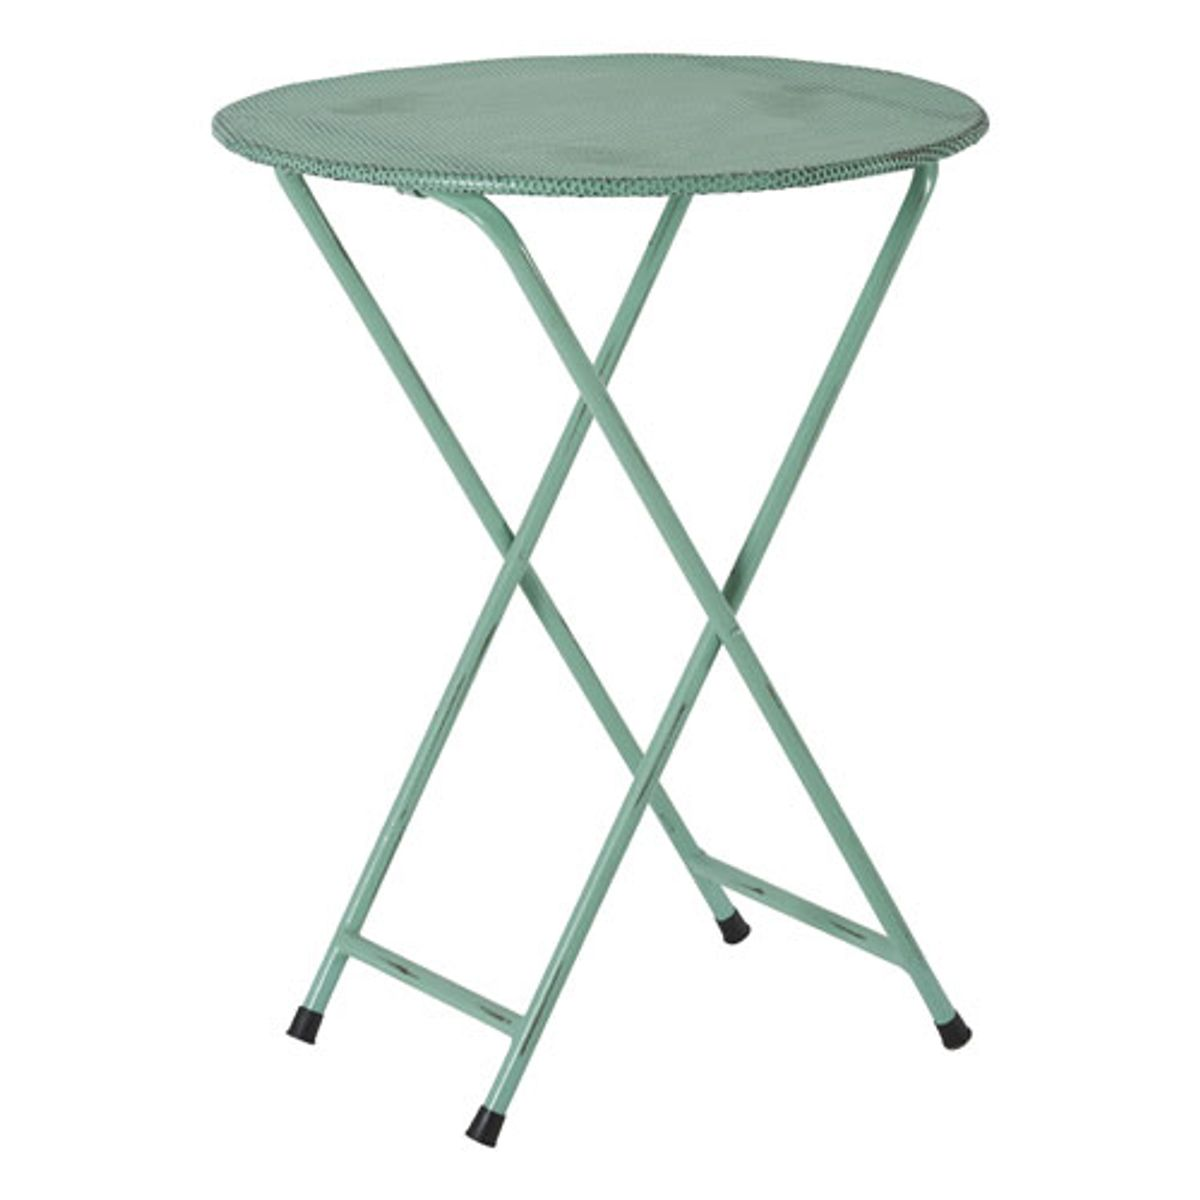 Emejing table de jardin en metal ronde photos awesome for Table ronde metal